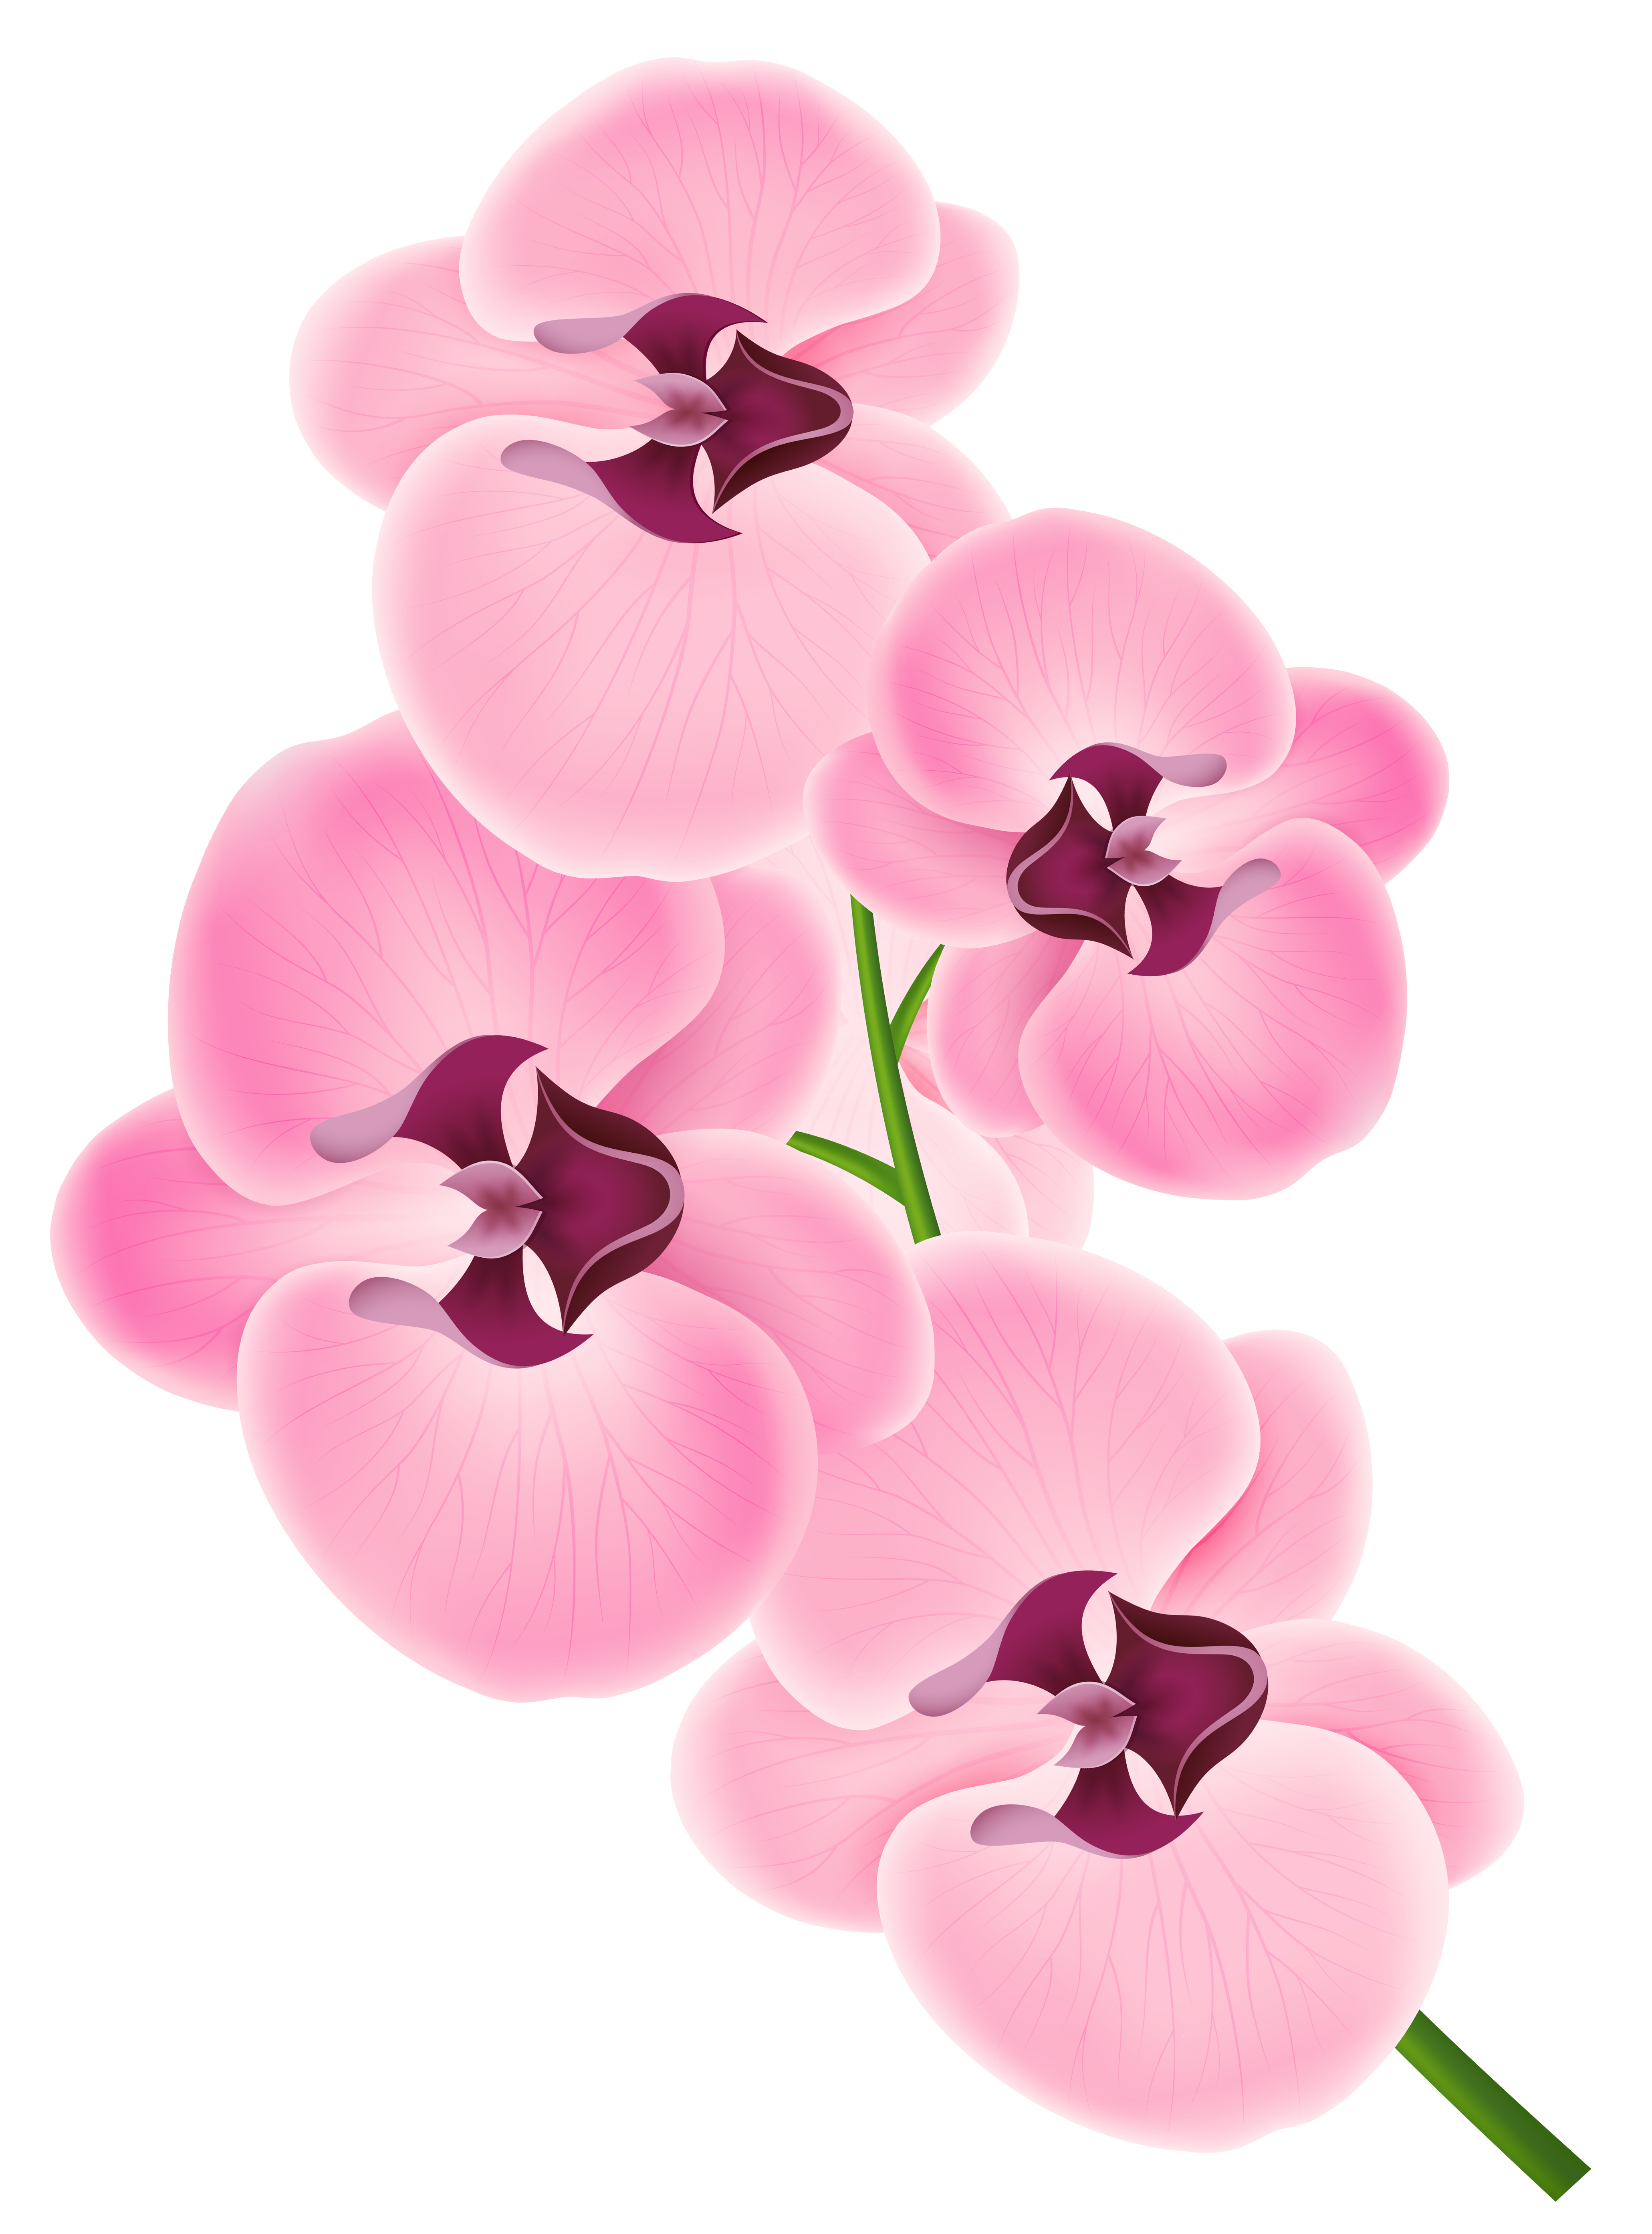 clipart royalty free download Free cliparts download clip. Orchid clipart.